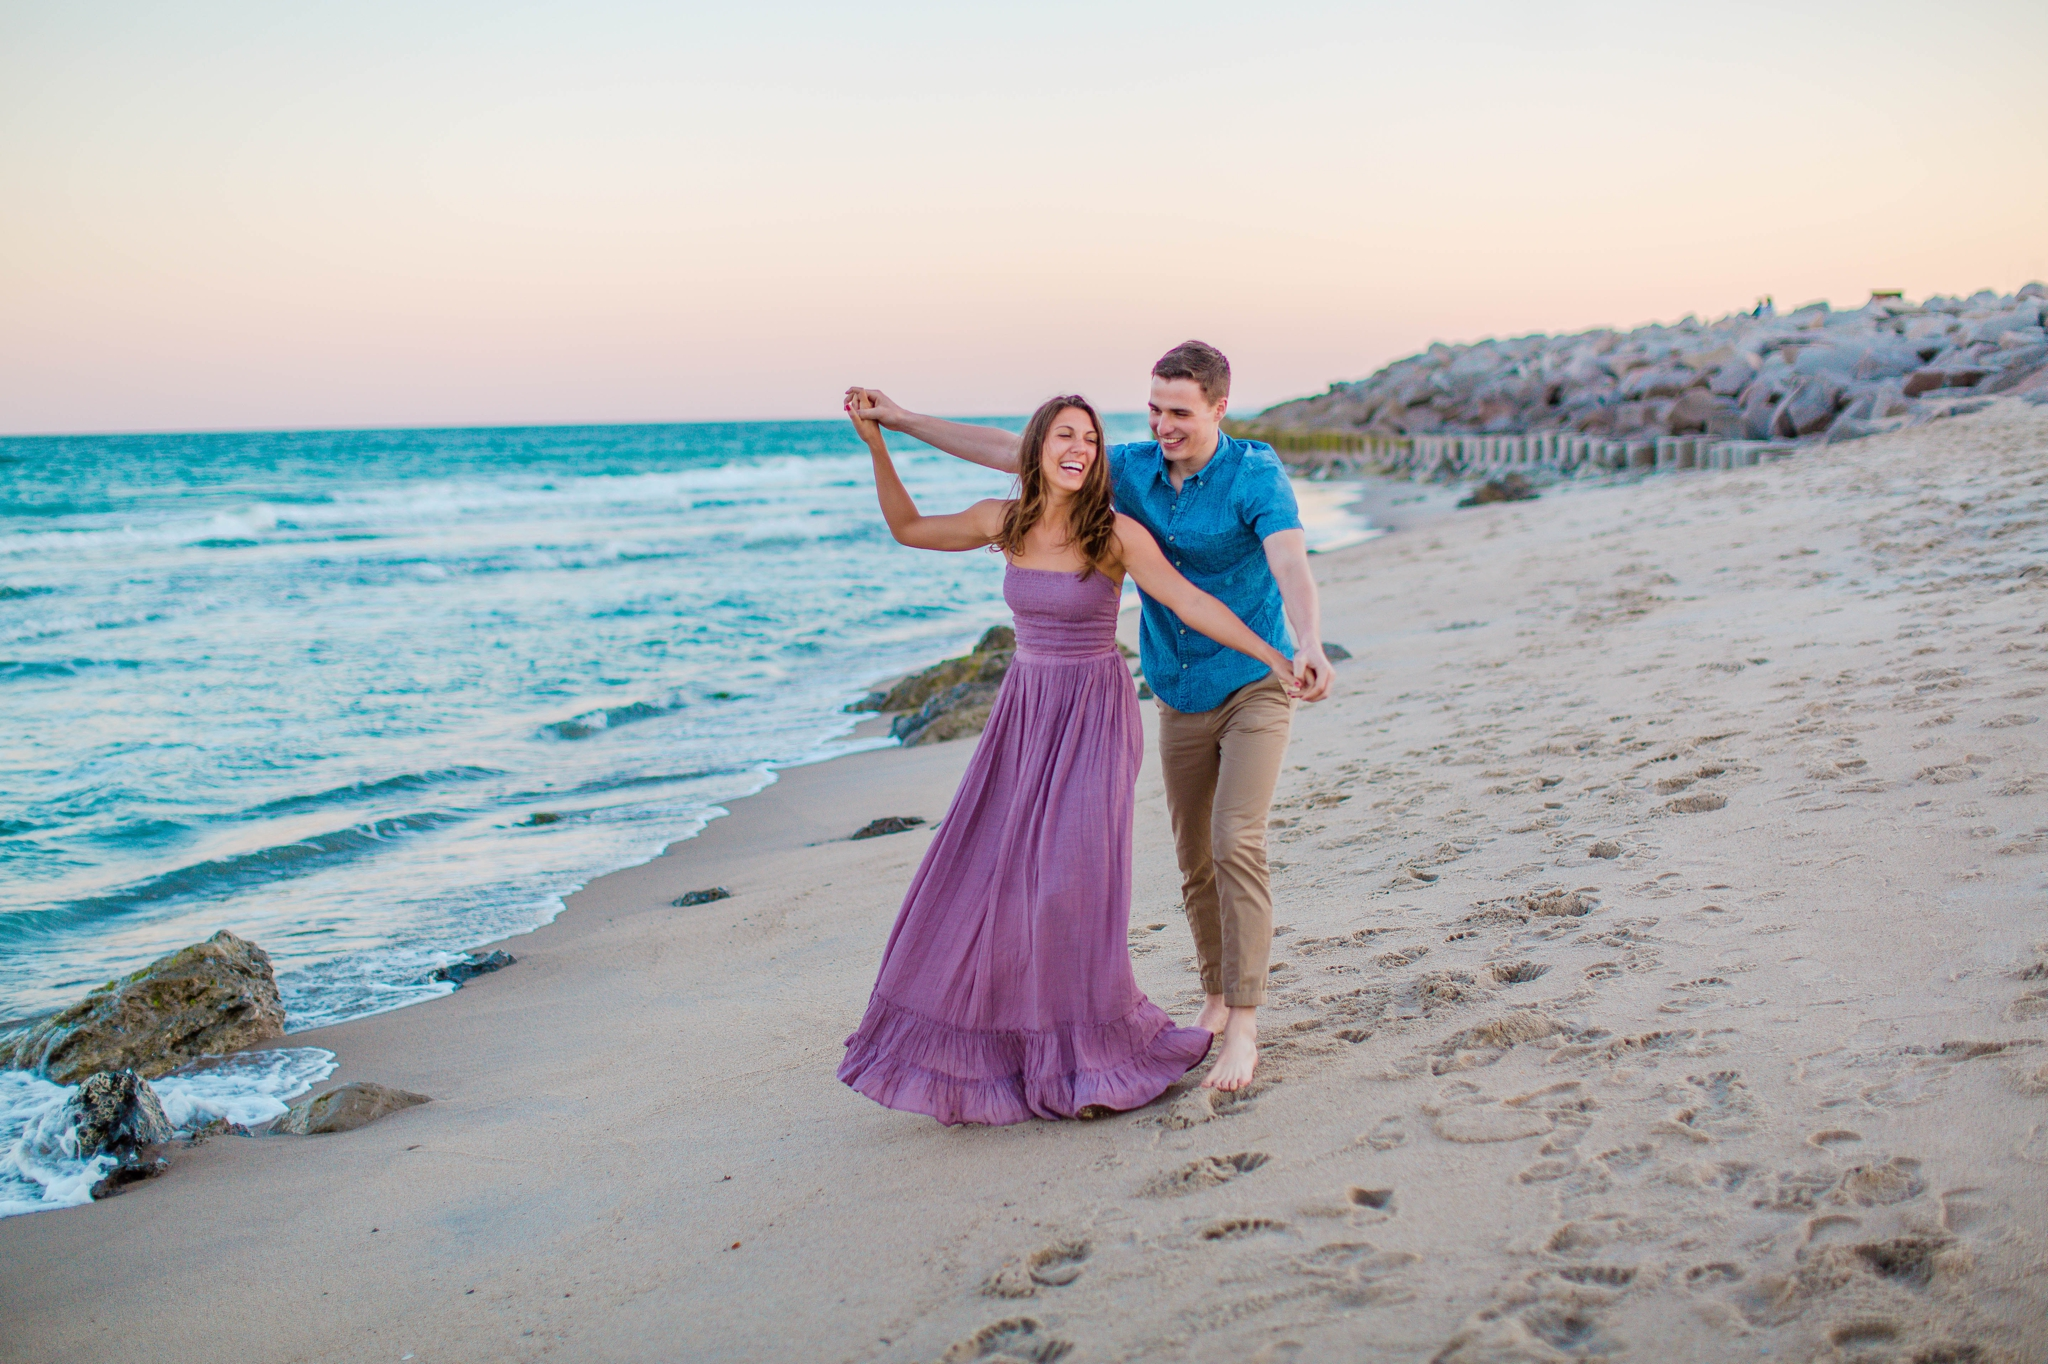 couple playing on the beach - Woman is in a flowy pastel maxi dress - candid and unposed golden light session - beach engagement photographer in honolulu, oahu, hawaii - johanna dye photography